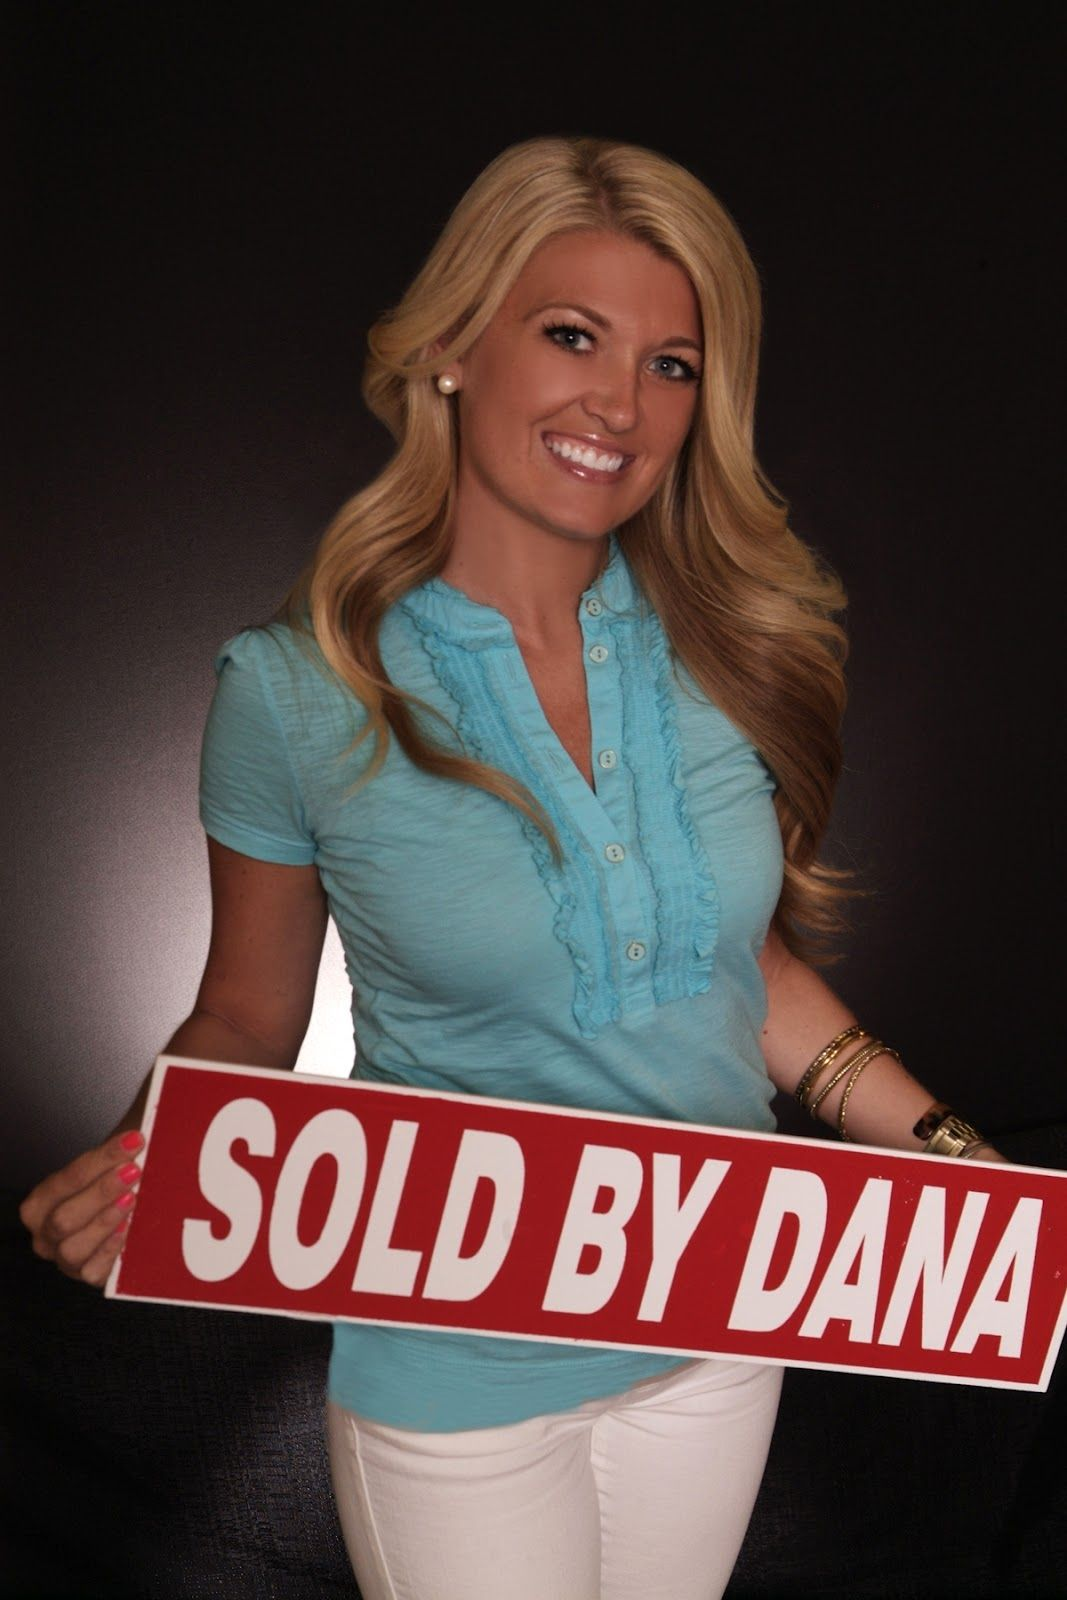 Real Life, Real Estate, Real Dana  Realtor in Lexington, KY  Serving Central KY for ALL your Real Estate Needs :)